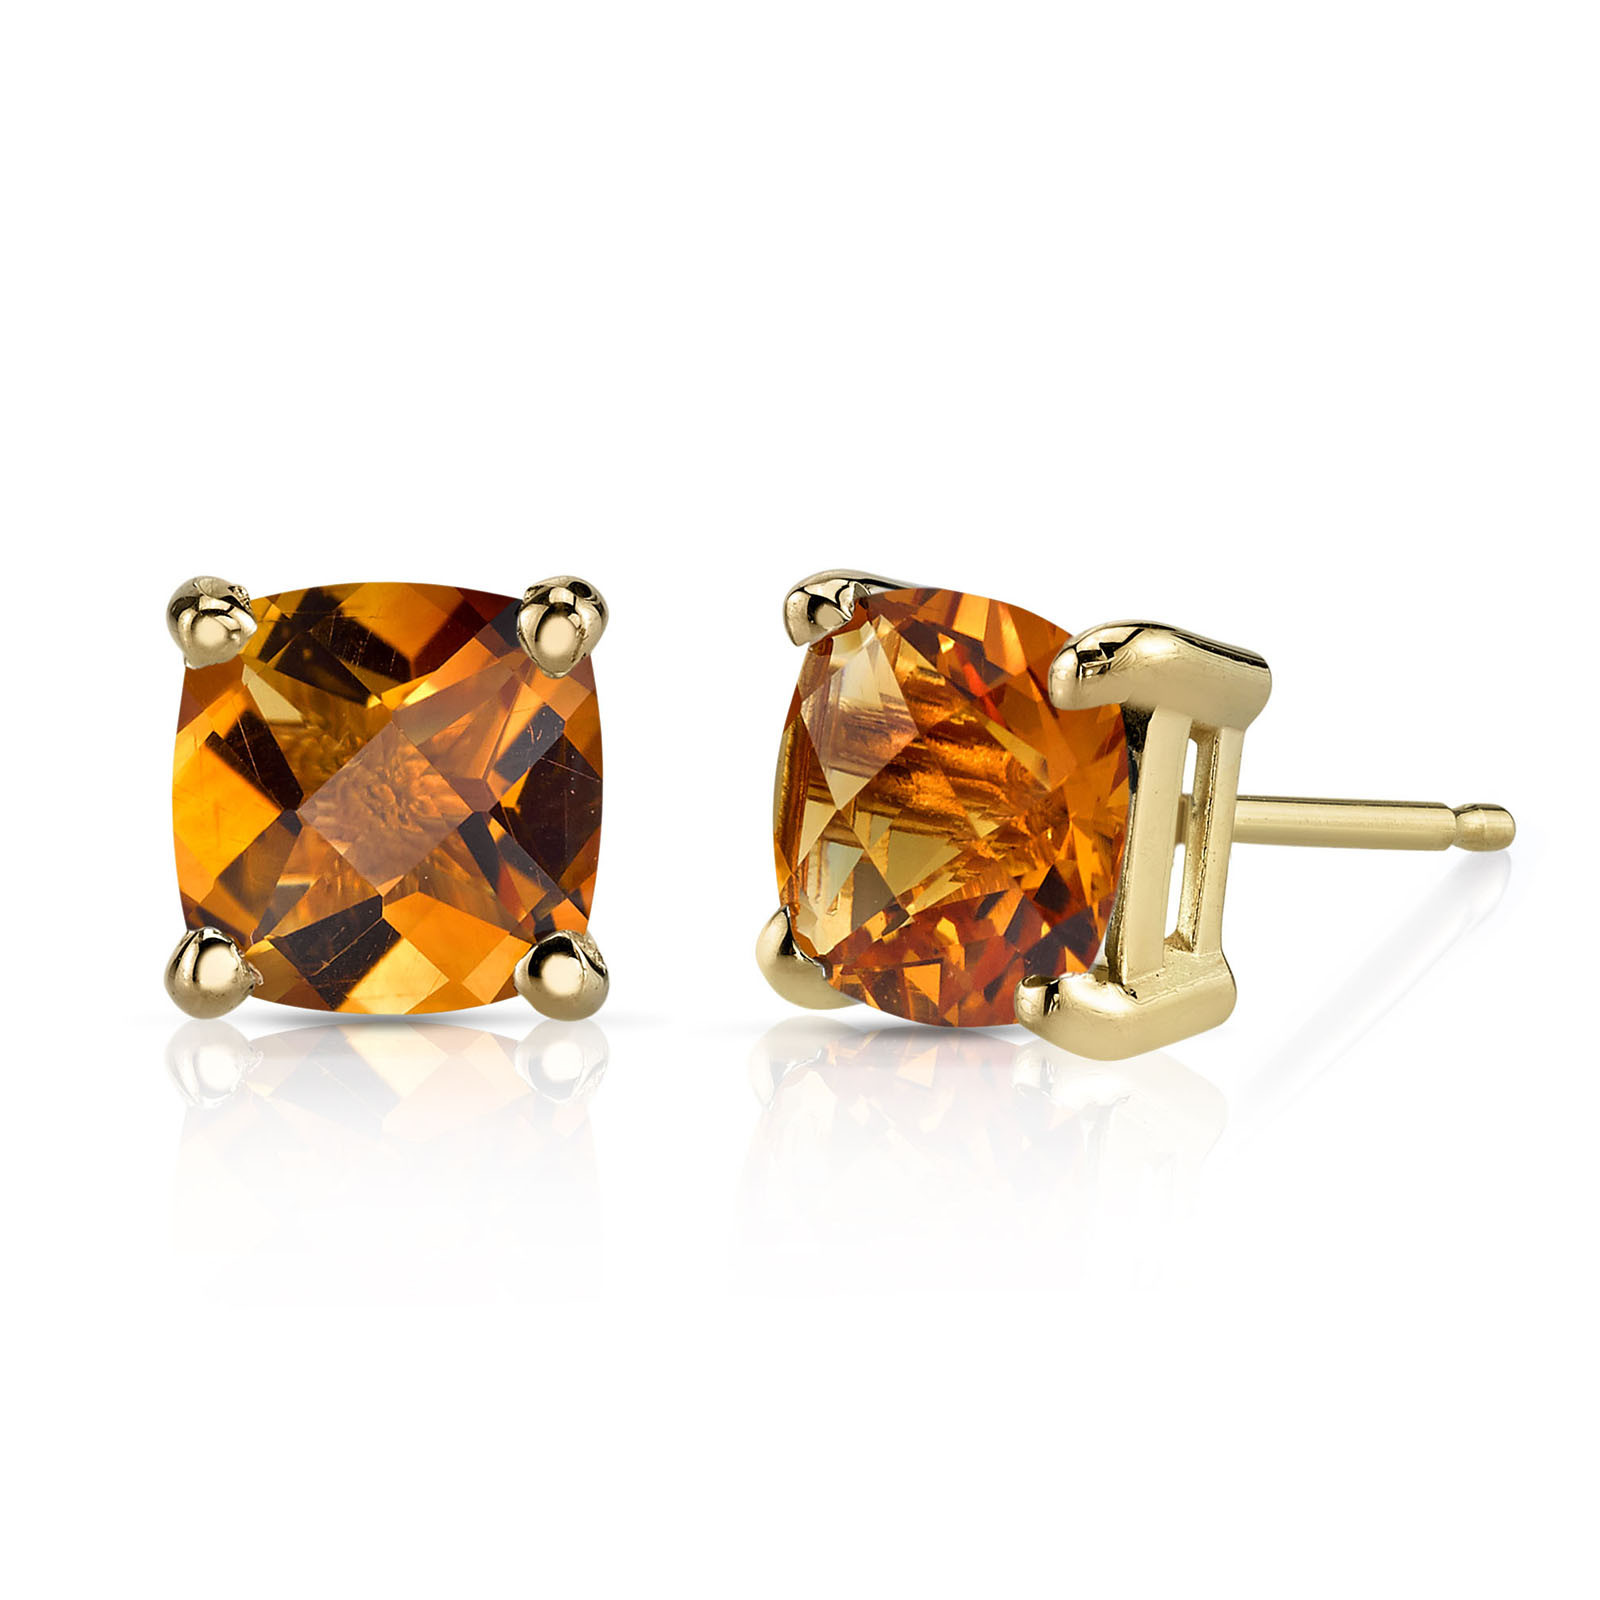 8db94b1867aa3 Cushion Cut Citrine Stud Earrings in 9ct Gold